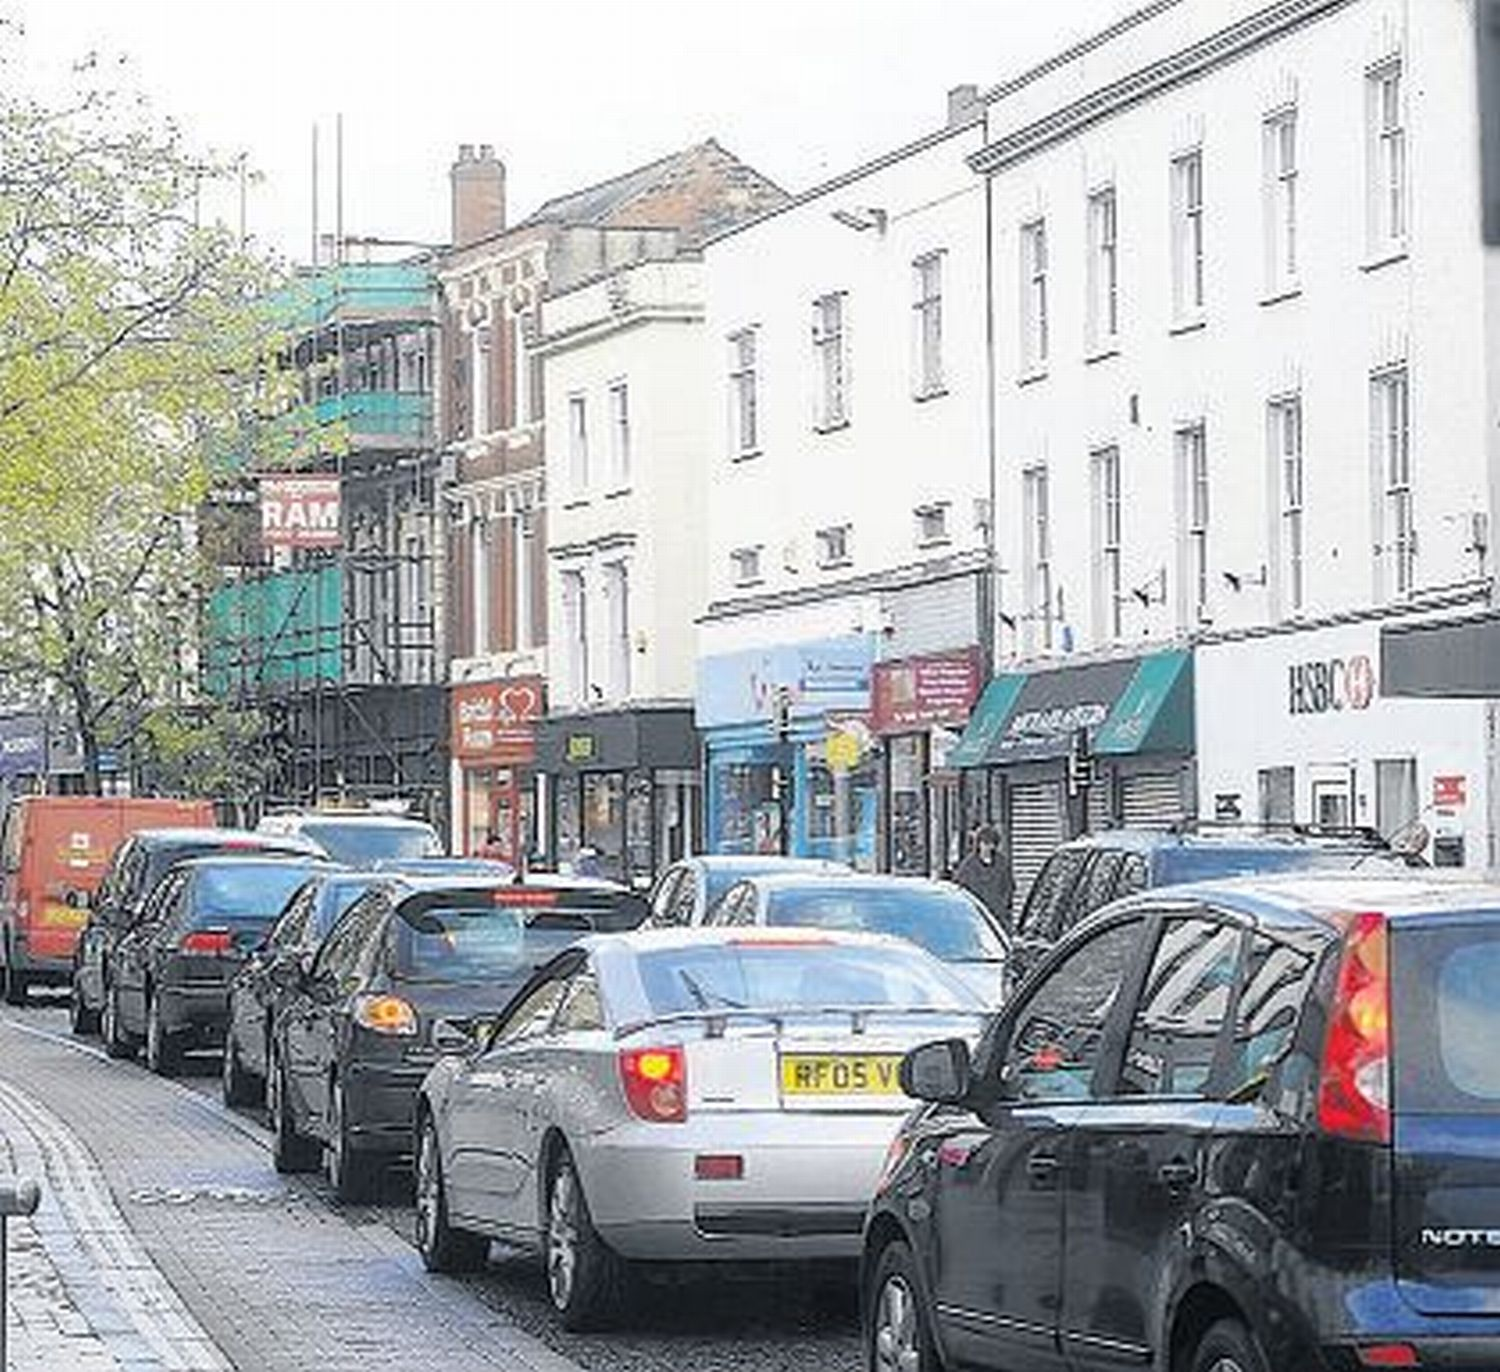 Taunton has been gridlocked for several weeks due to a series of roadworks.